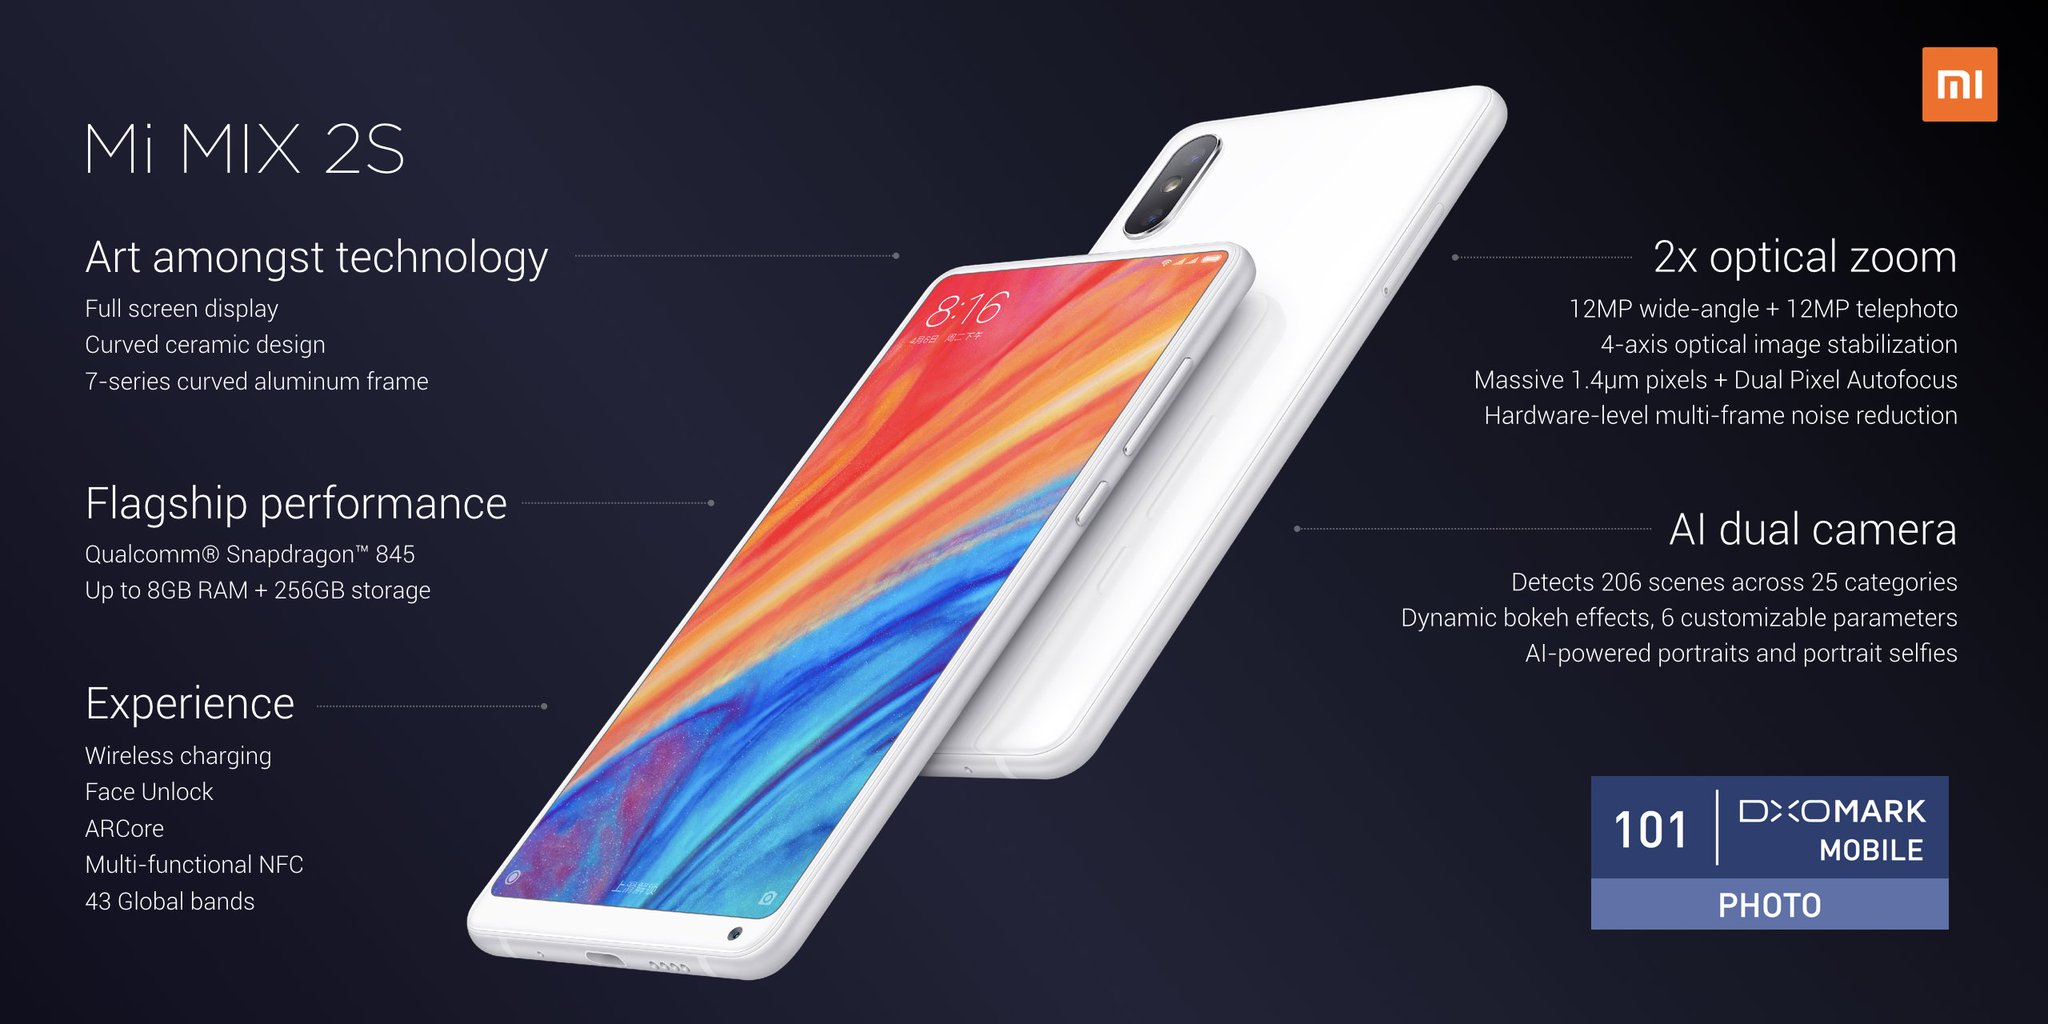 Xiaomi Mi Mix 2S Features, Specifications, Price and Release Date